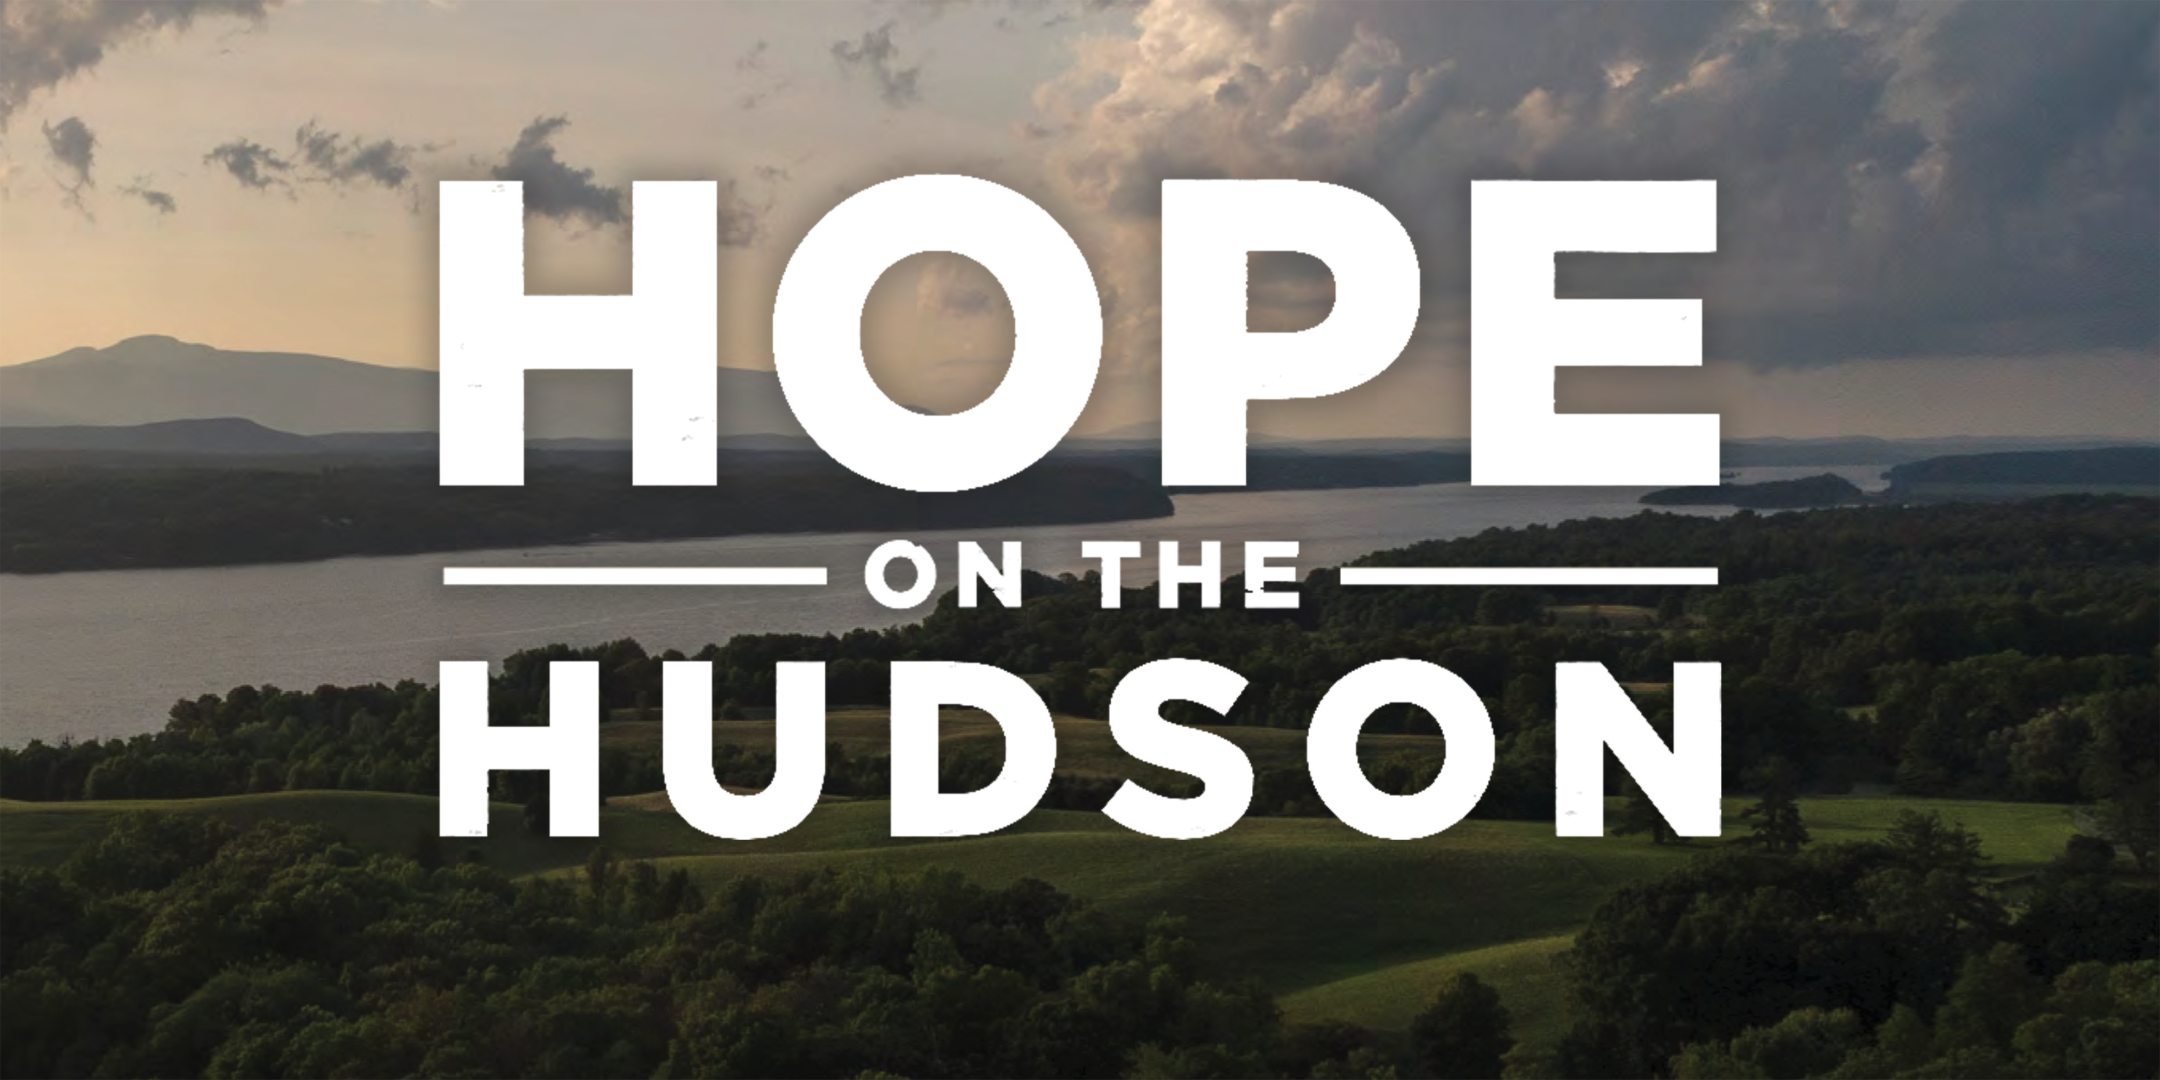 HOPE ON THE HUDSON | New Films From the 'Hudson River Stories' Series